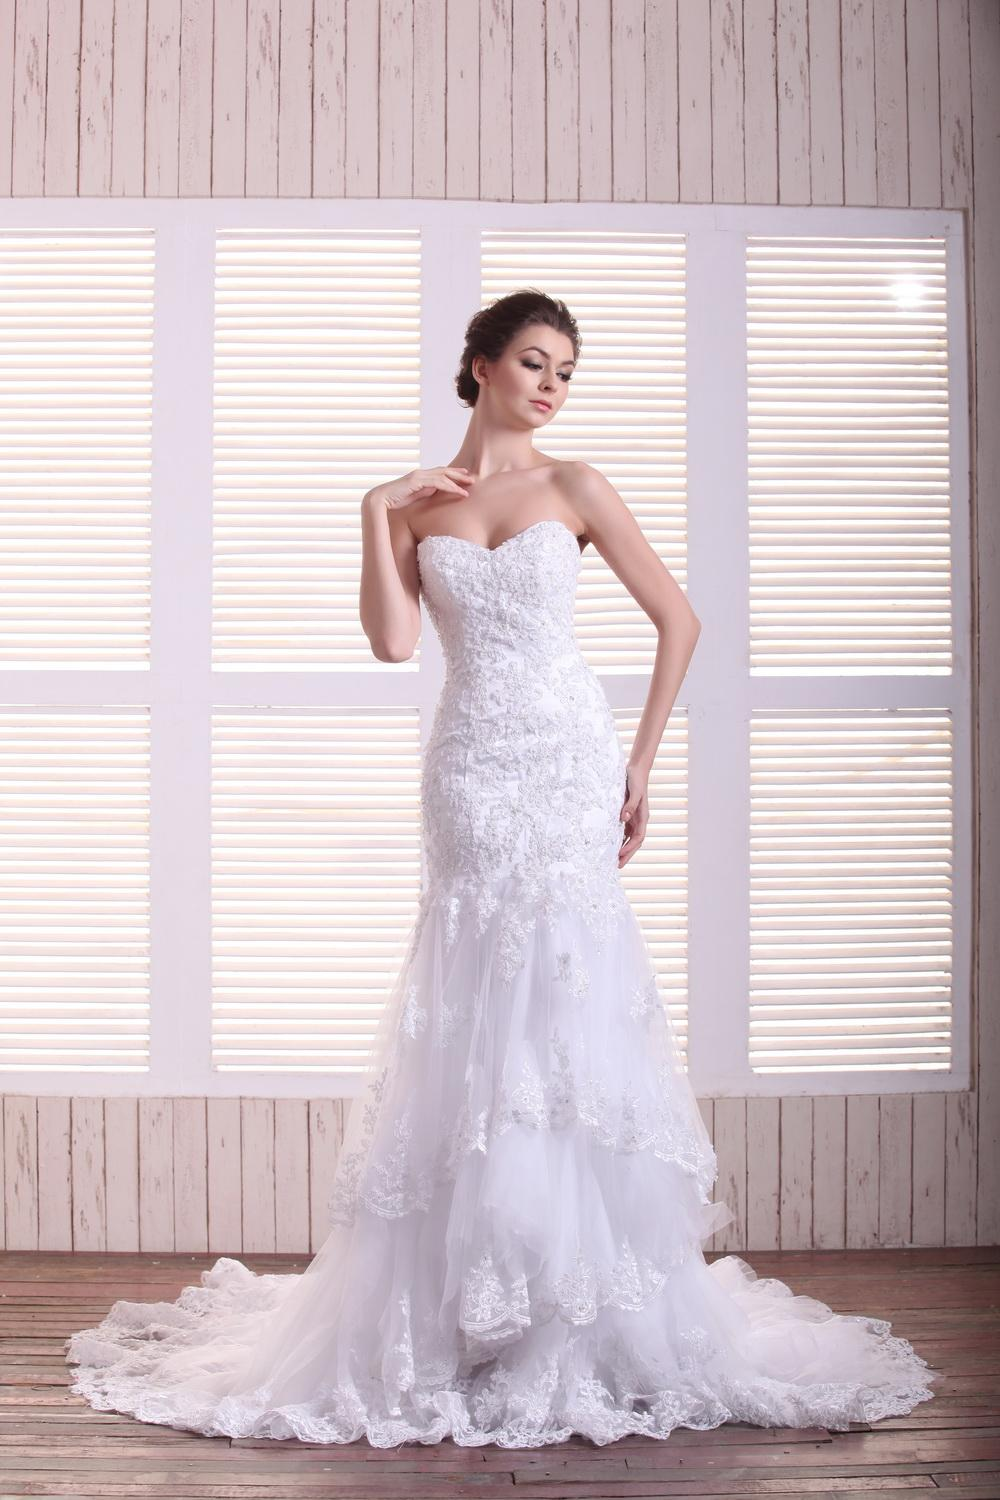 Buying Wedding Gowns Online Reviews - Flower Girl Dresses